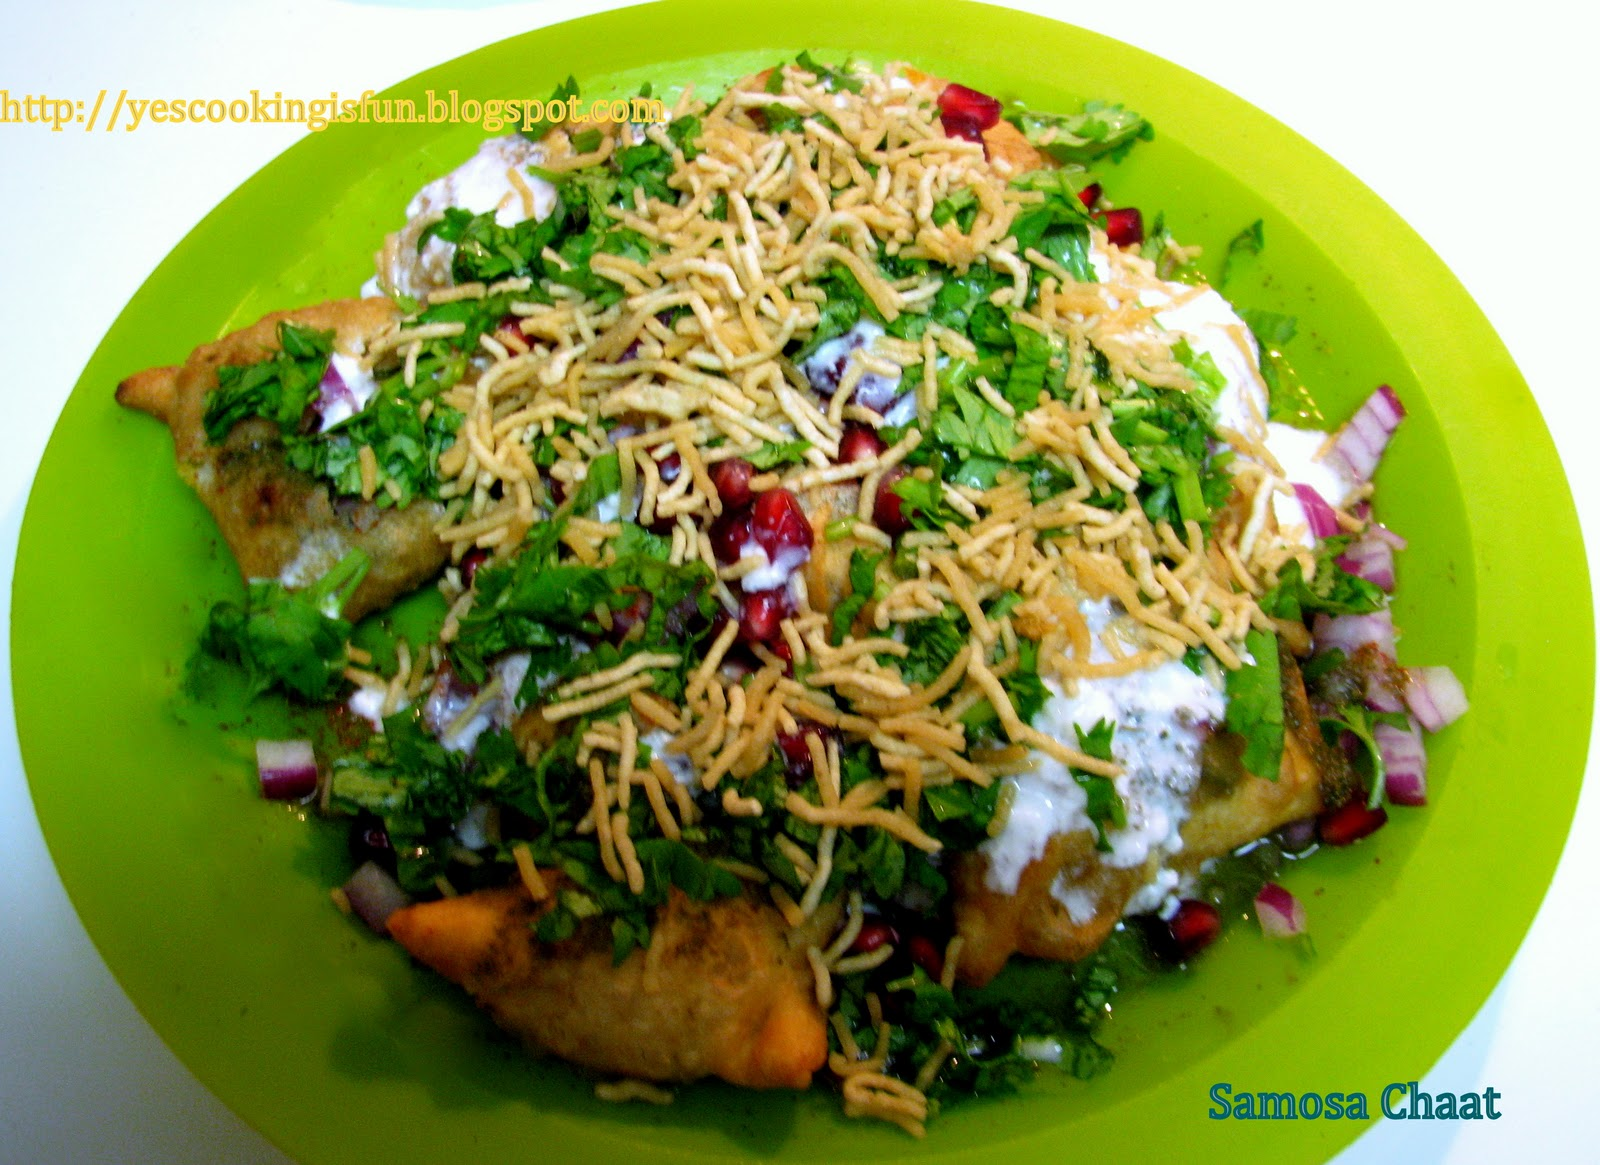 Fun with Cooking: Samosa Chaat